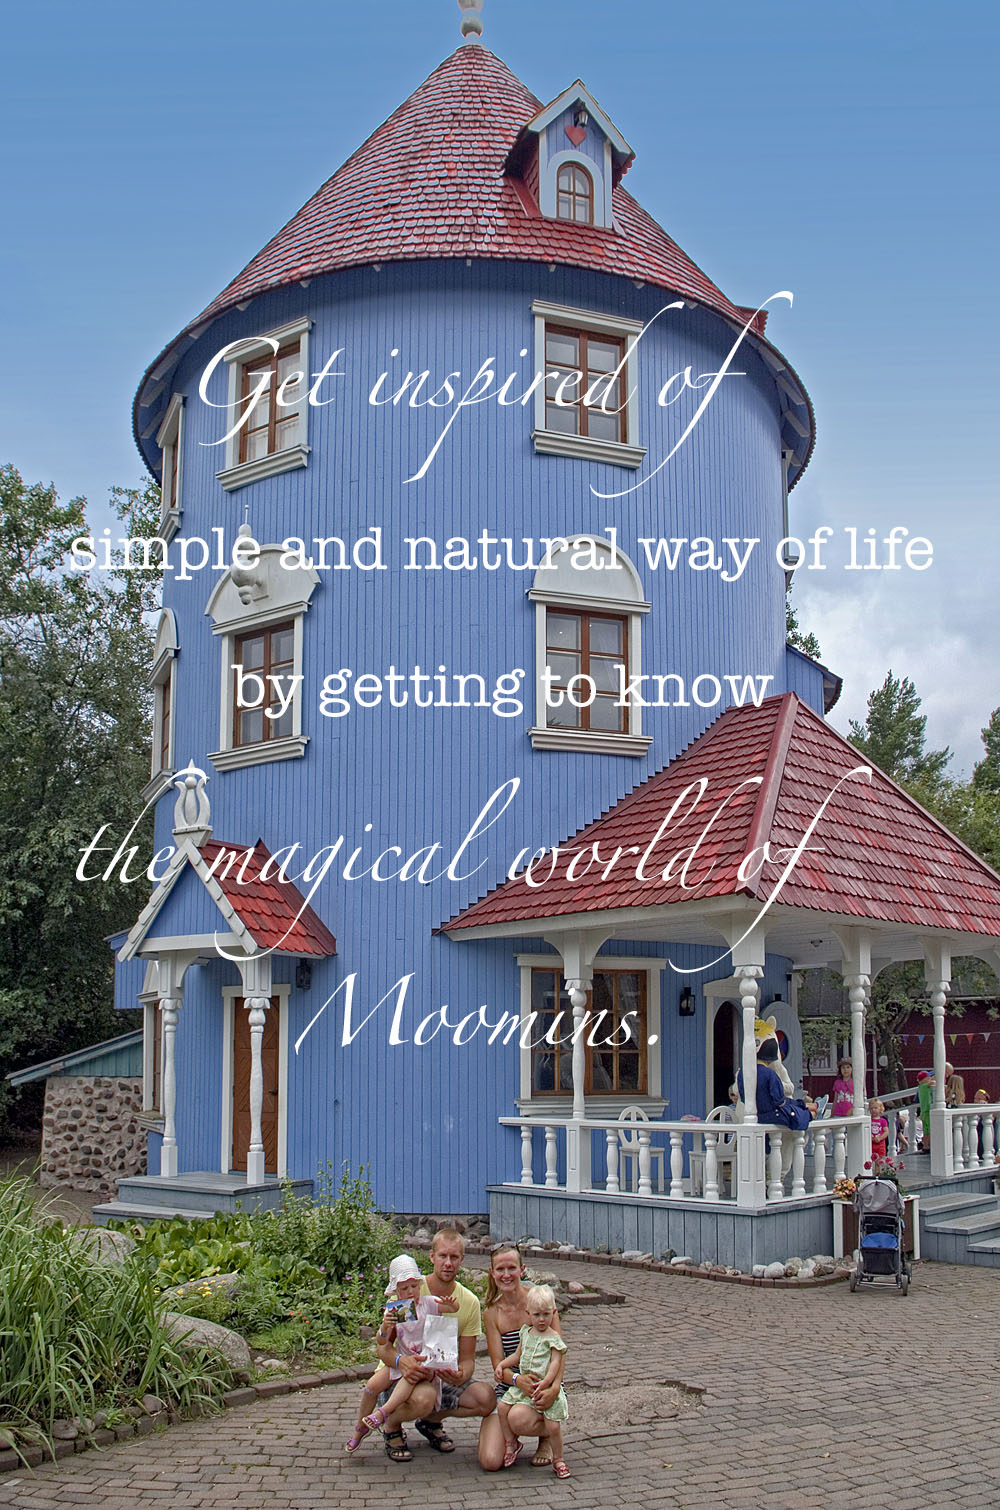 moomin-world-moomin-house